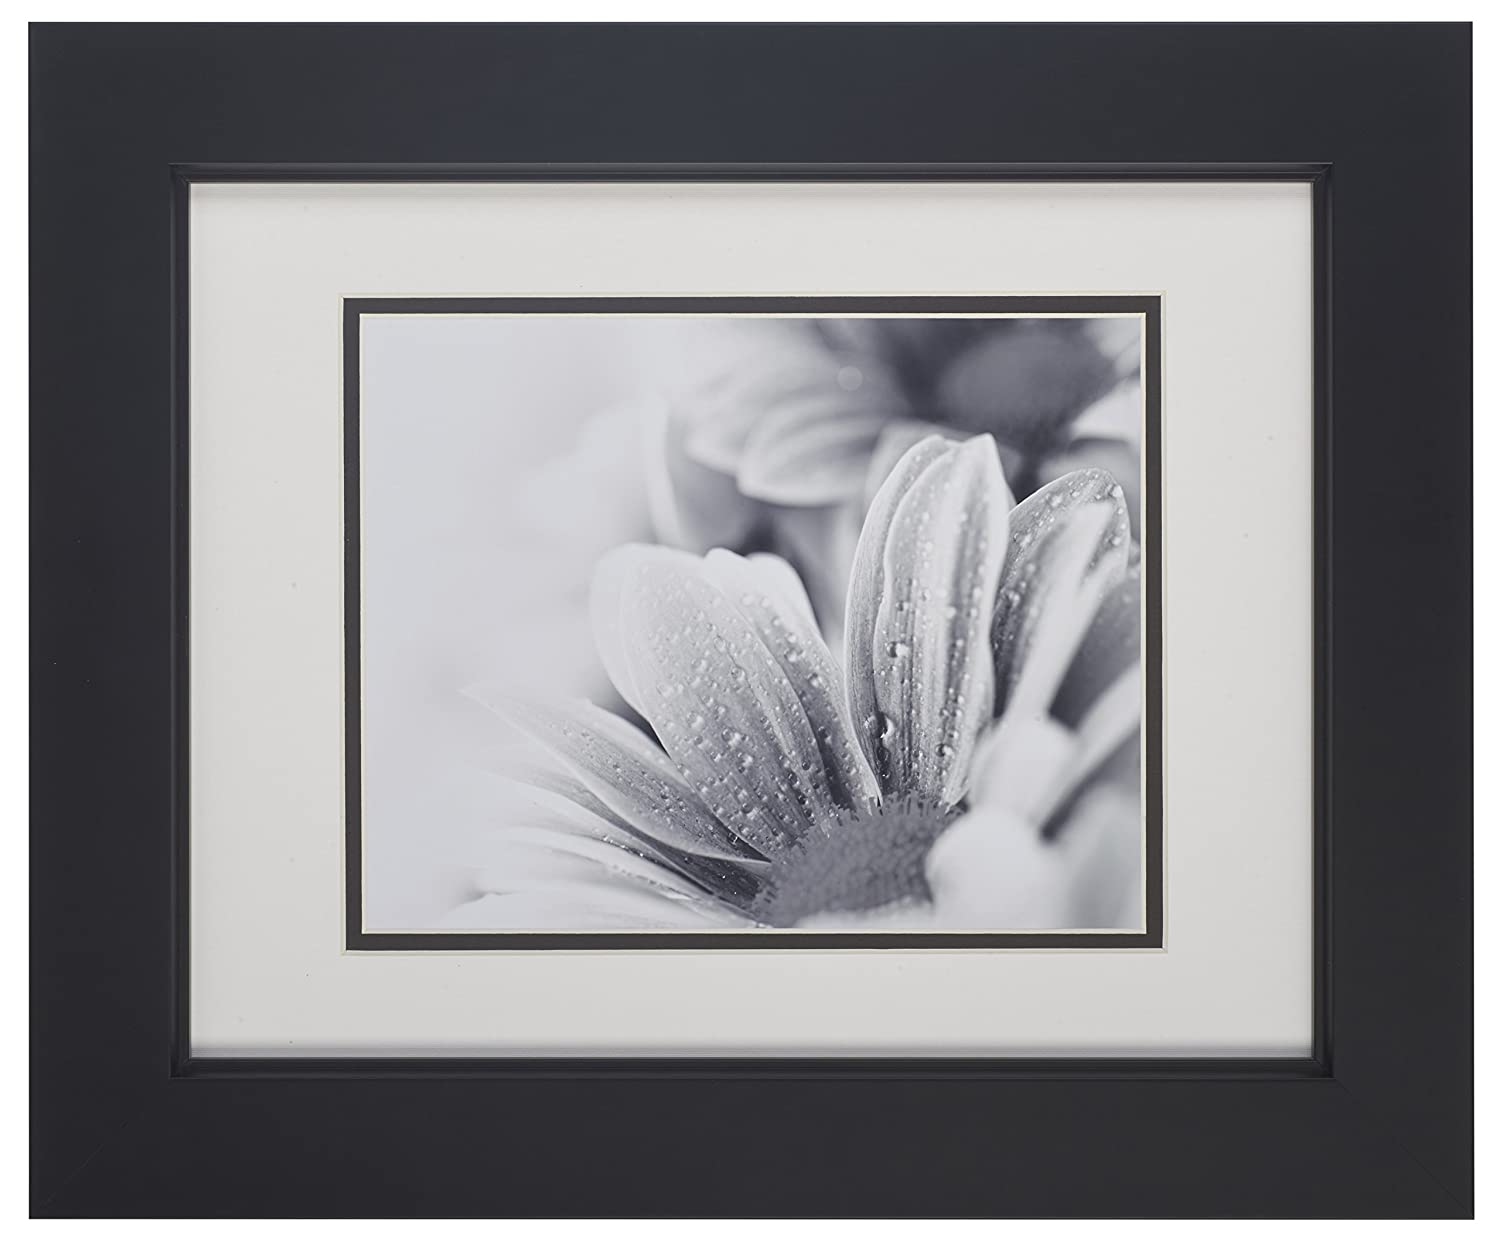 Amazon.com - Old Town 11x14 Black Studio Wood Frame, 2-Pack - New ...